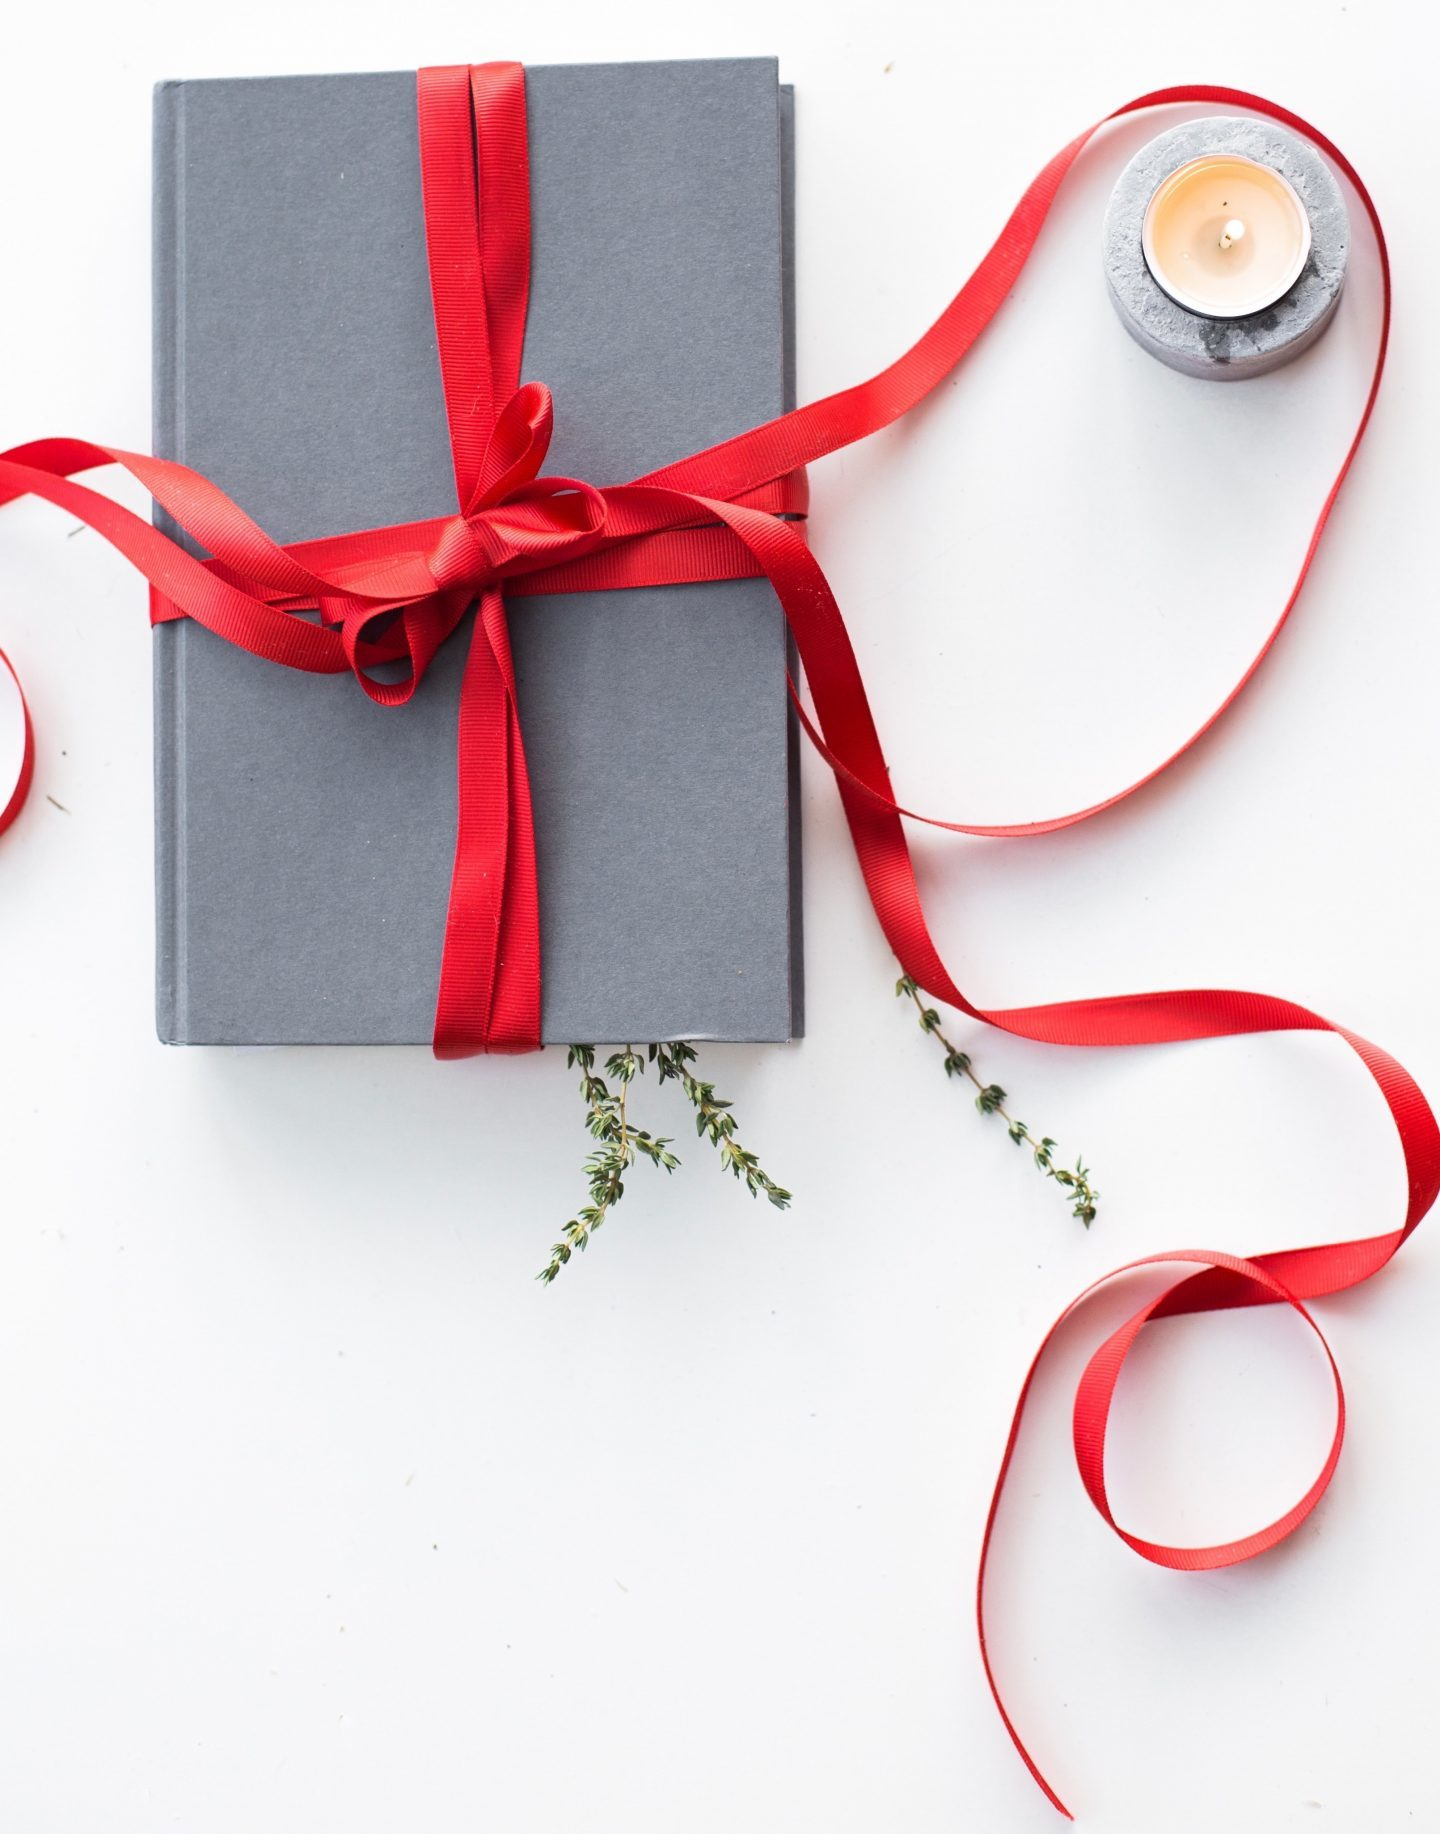 How to win $100 GIft Card to Nordstrom 1 holiday shopping Christmas gifts for him and her, Seasonal shopping, gifts ideas, best deals